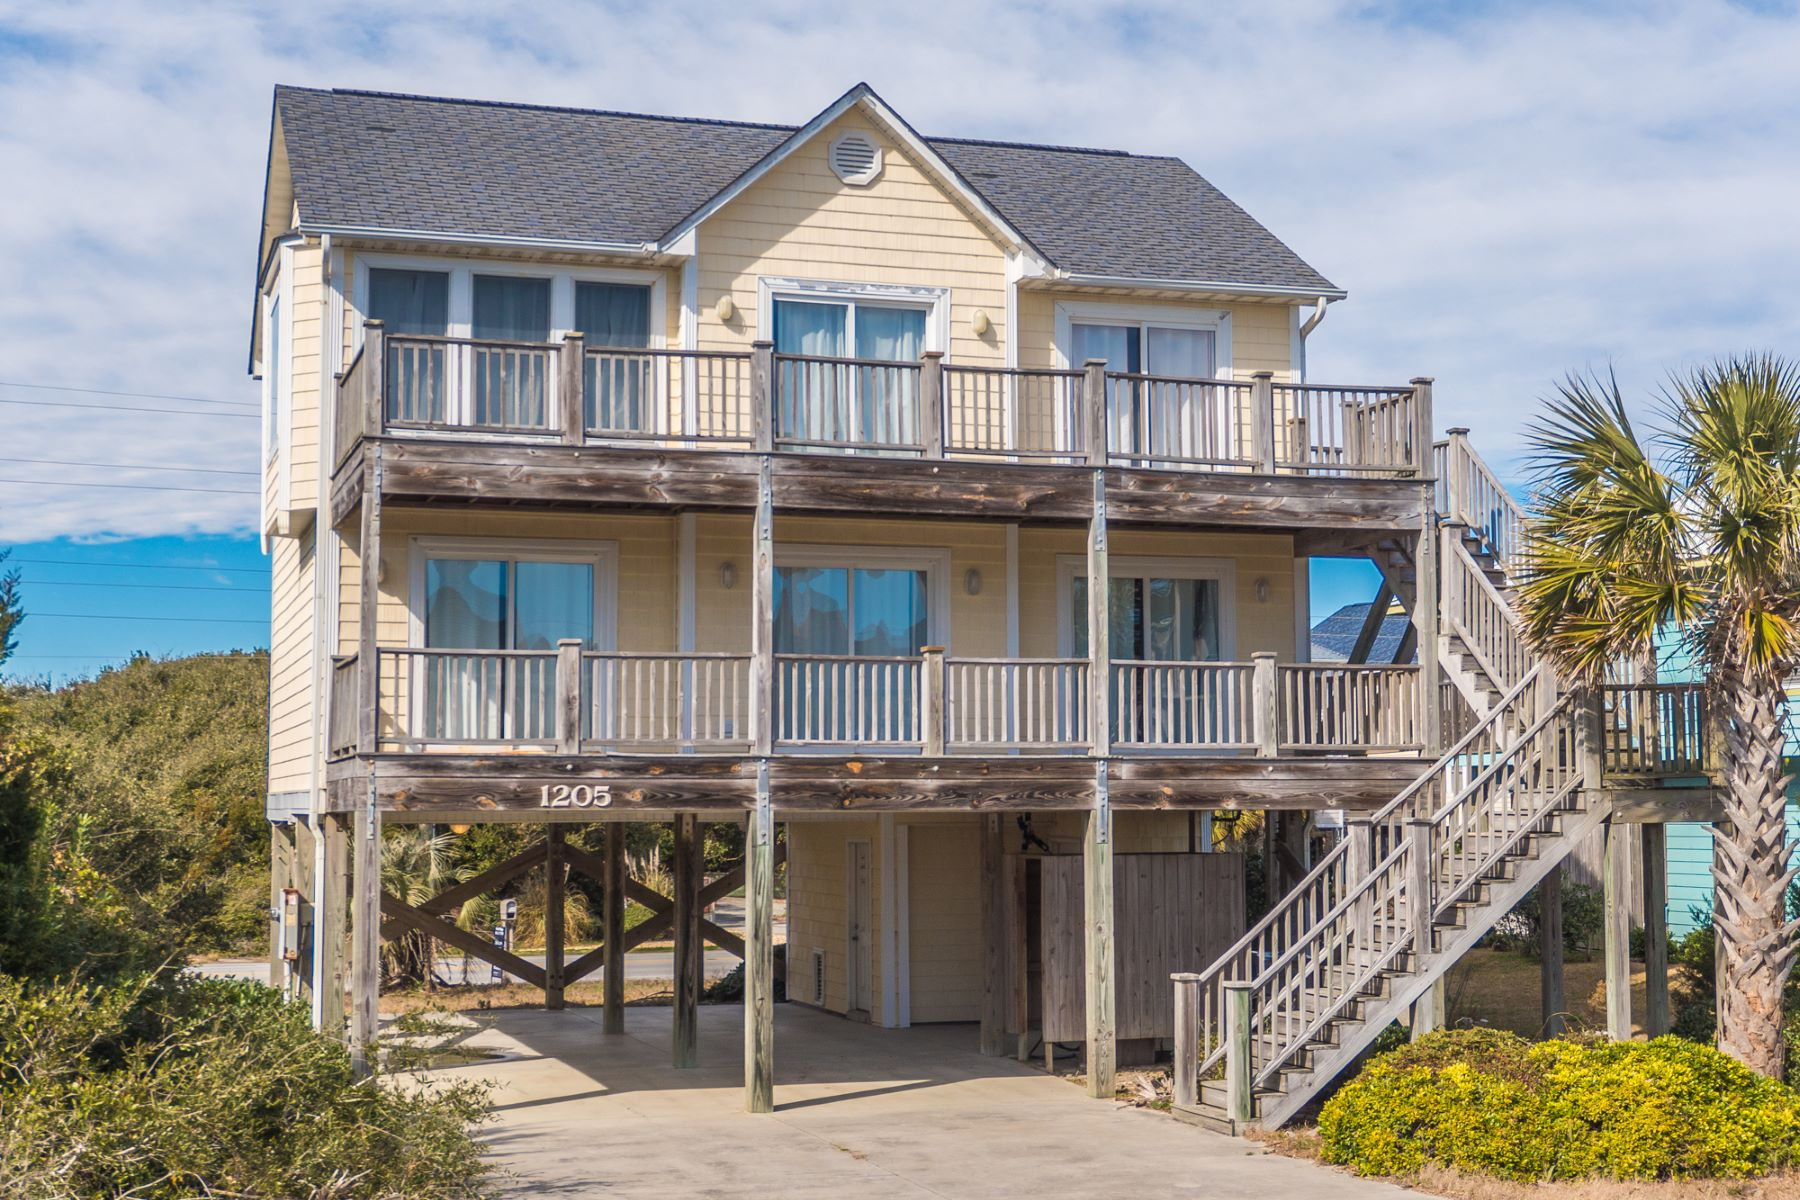 Einfamilienhaus für Verkauf beim Enjoy Harmonious Ocean Views and the Serenity of the Beach 1205 S Shore Drive Surf City, North Carolina, 28445 Vereinigte Staaten